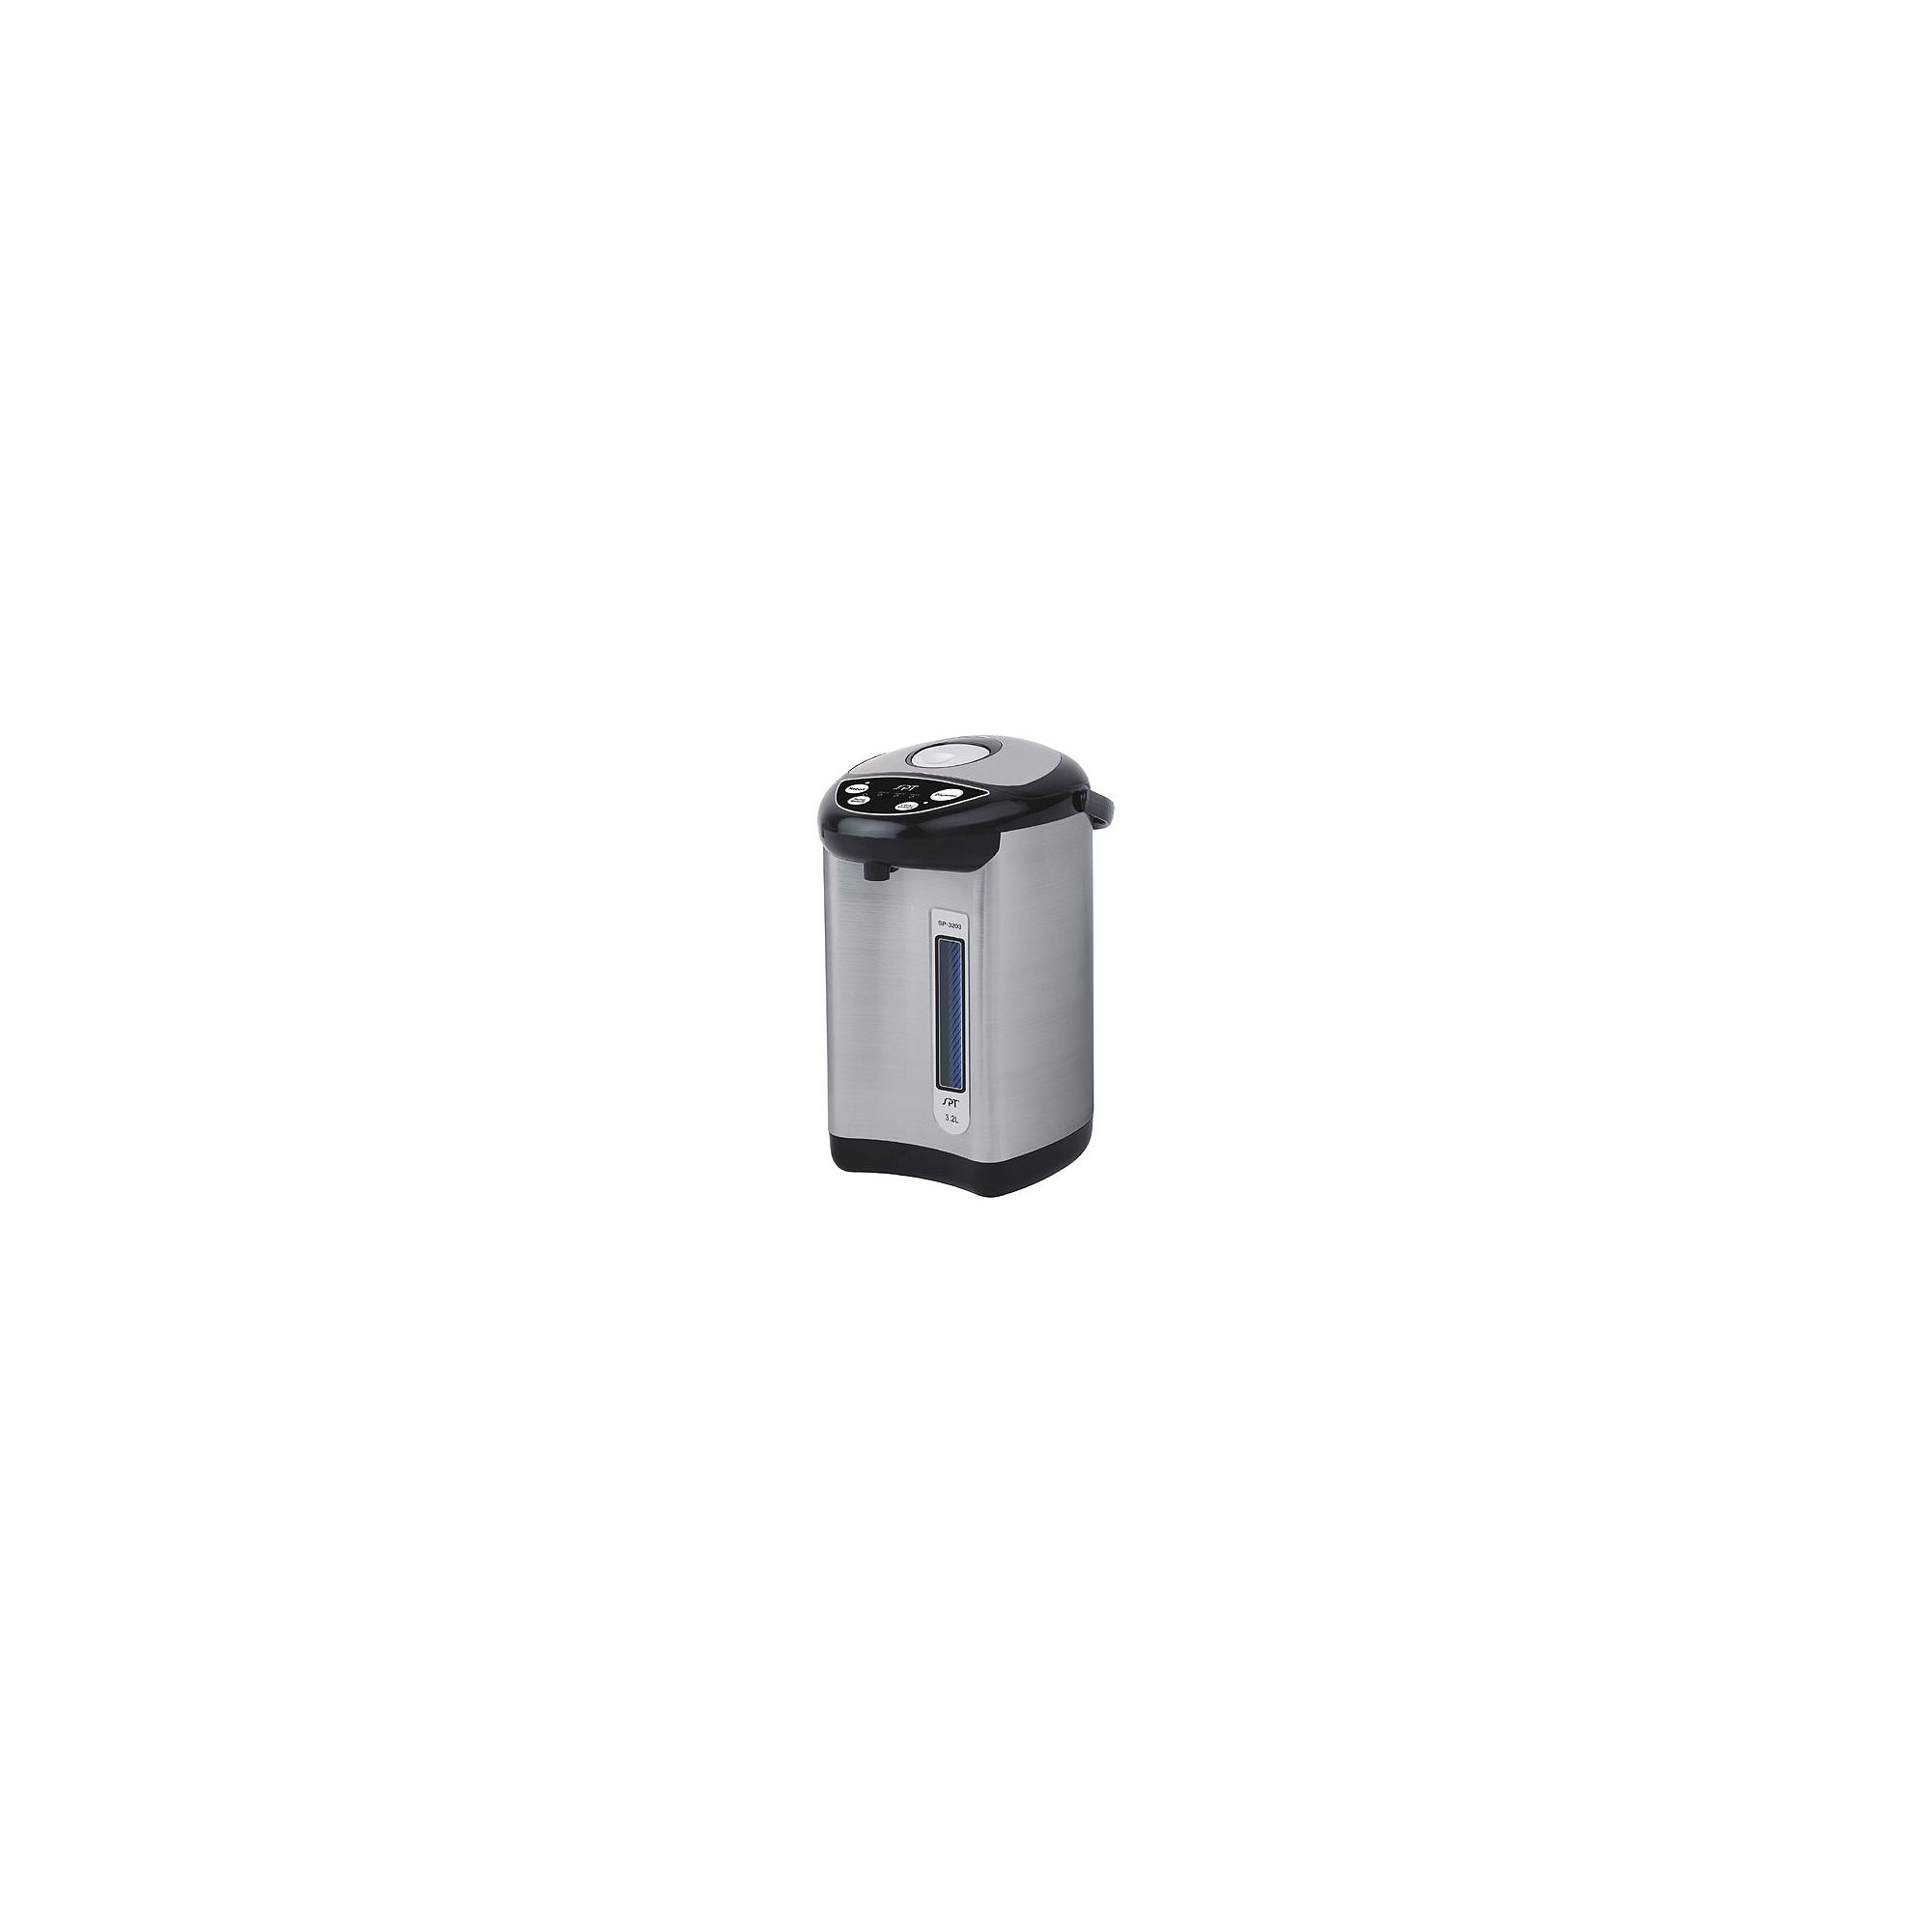 SPT SP-3203: Stainless Hot Water Dispenser with Multi-Temp Feature 3.2L